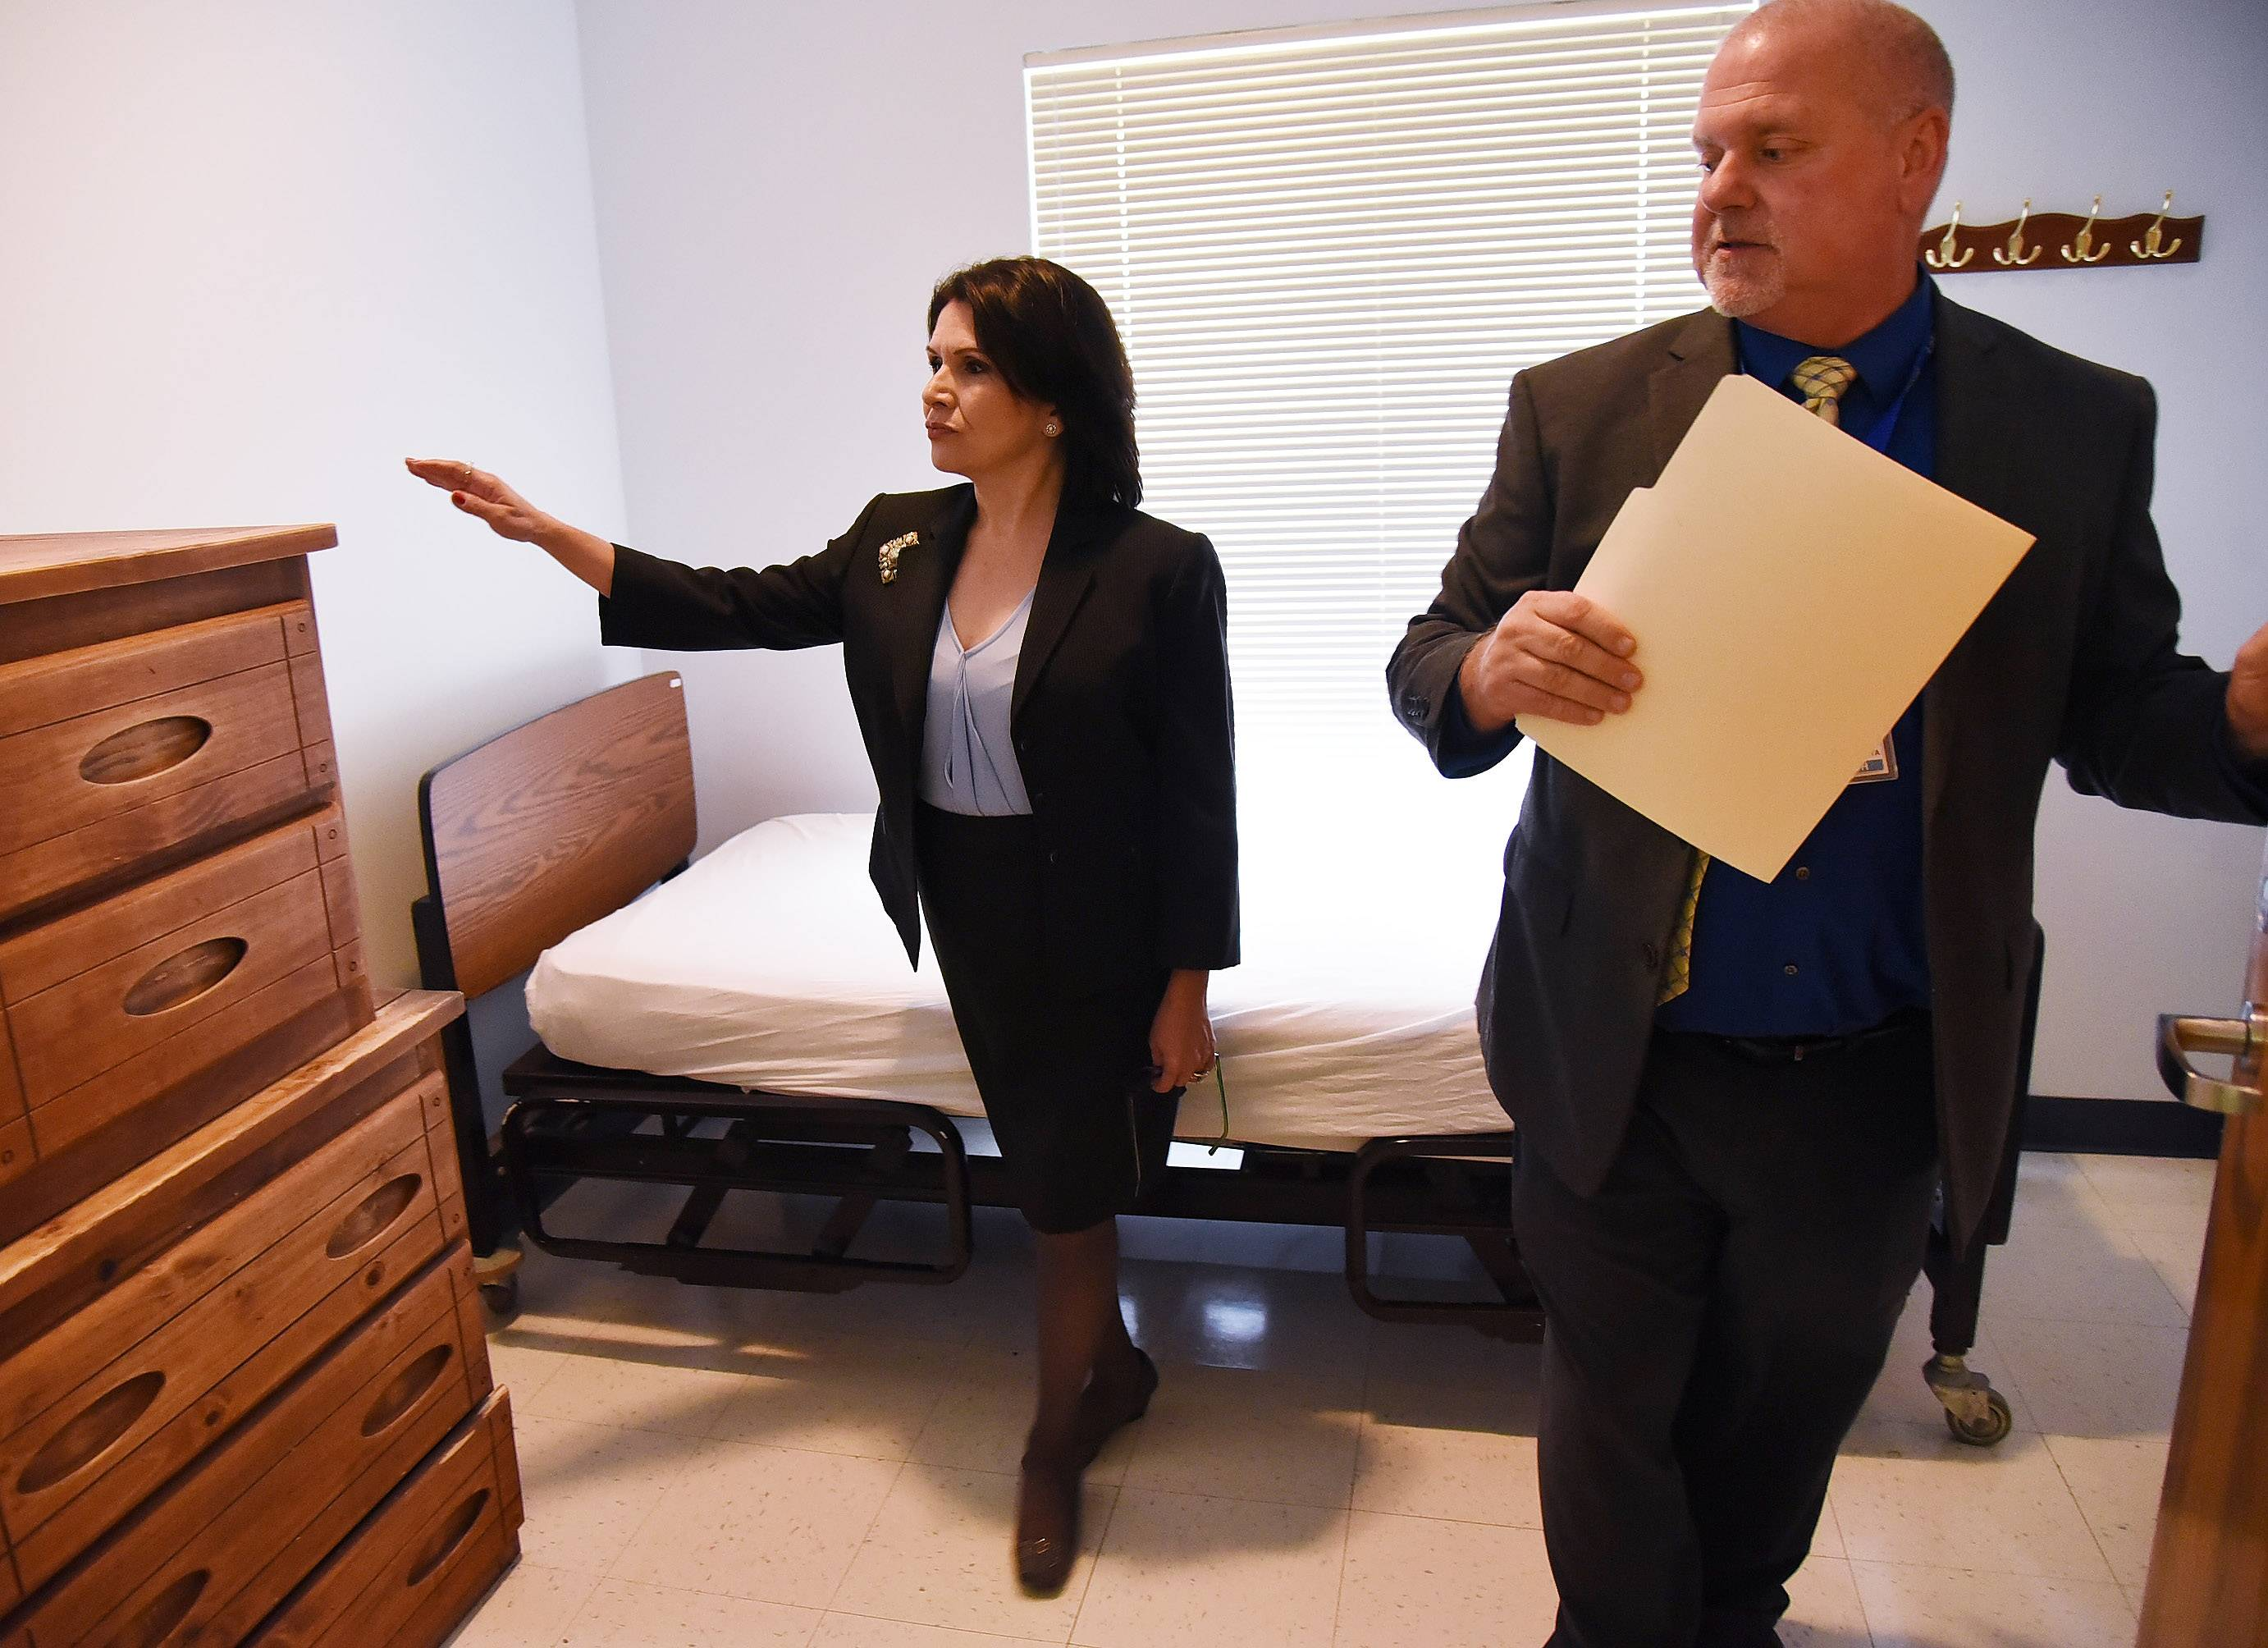 Associate Director Nick Caputa shows Lt. Gov. Evelyn Sanguinetti  an inpatient room in the addictions treatment program Friday during a tour of the Lake County Health Department and Community Health Center in Waukegan.